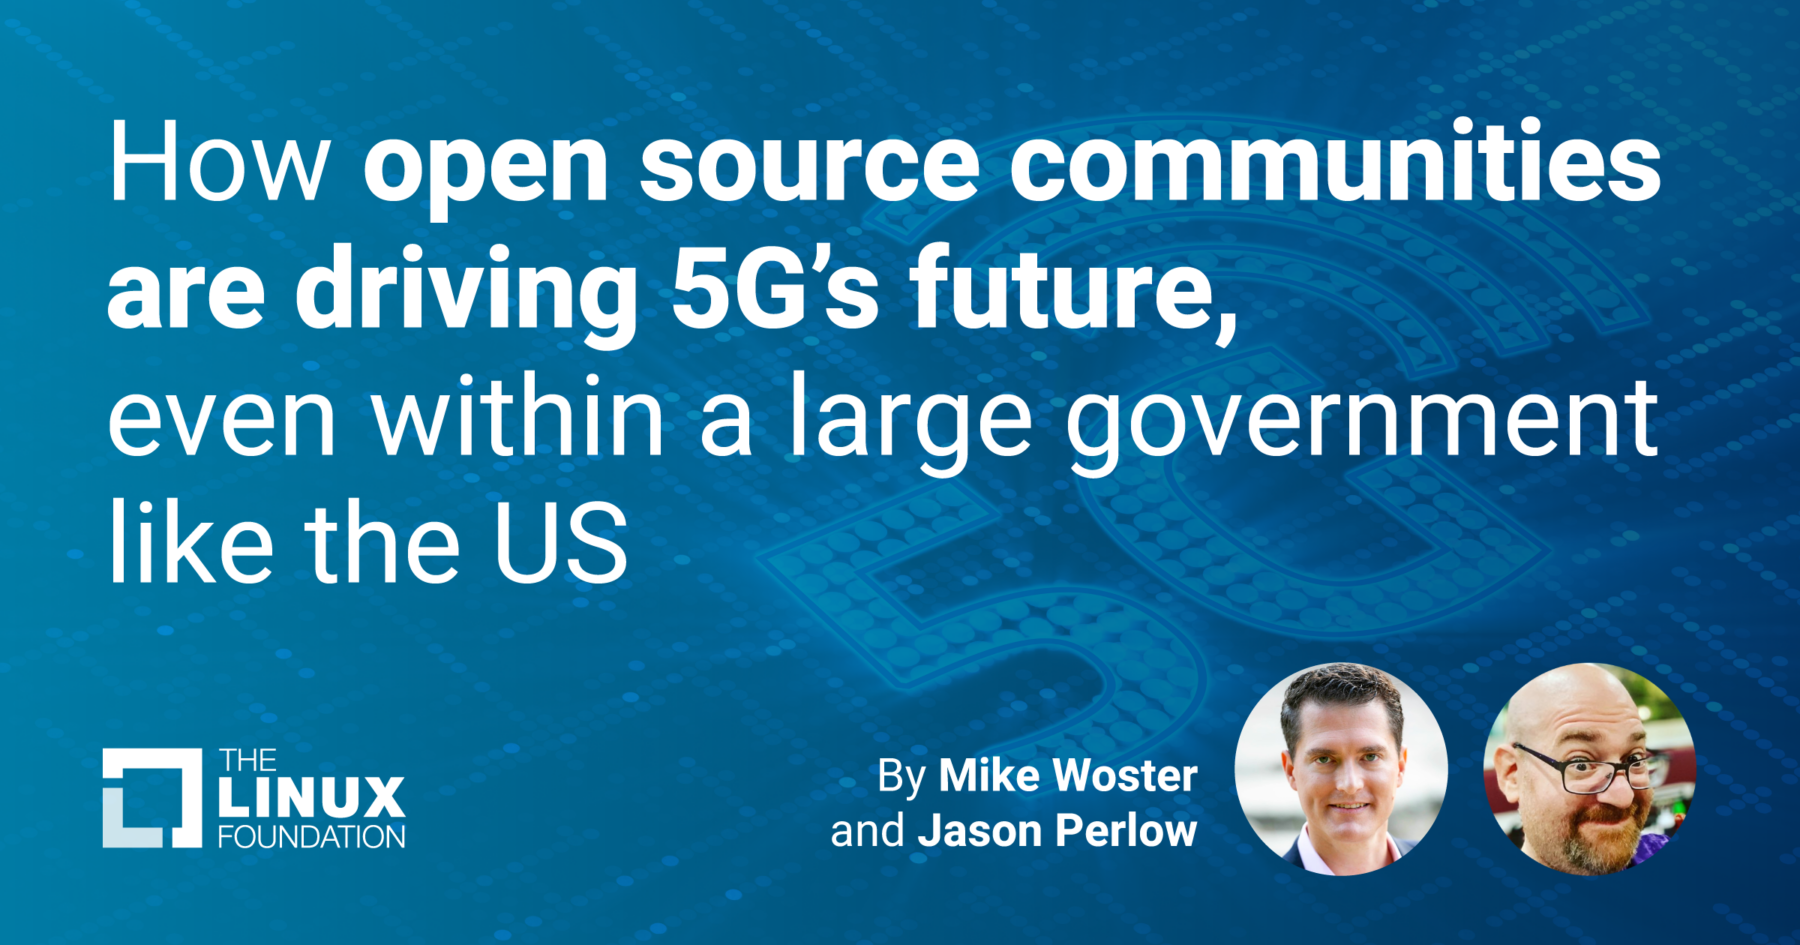 How open source communities are driving 5G's future, even within a large government like the US - Linux Foundation